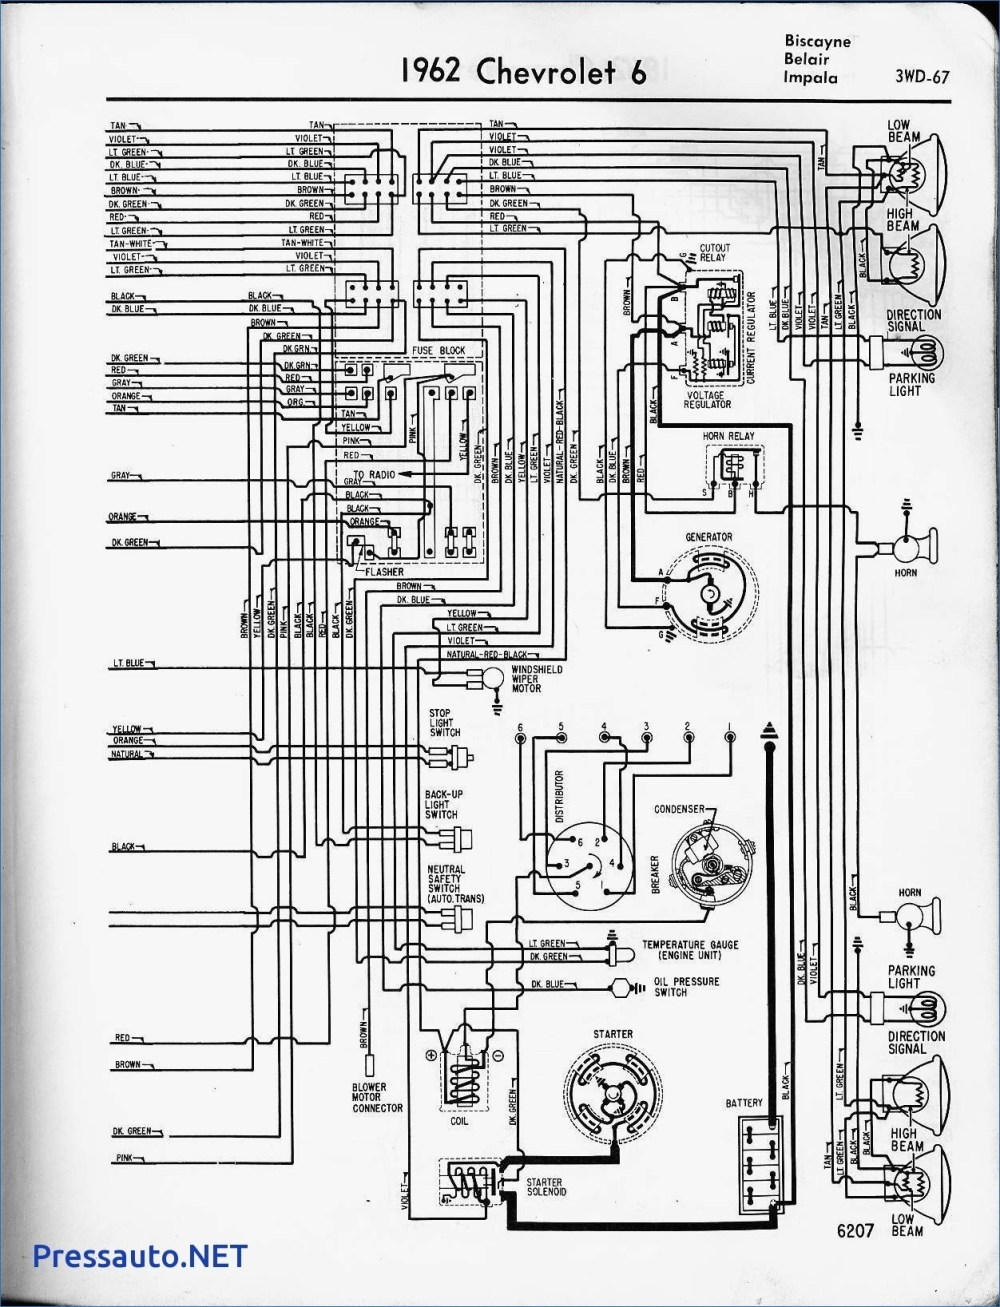 medium resolution of 61 impala wiring diagram wiring diagrams place more diagram like 1961 chevrolet 6 biscayne belair and impala wiring